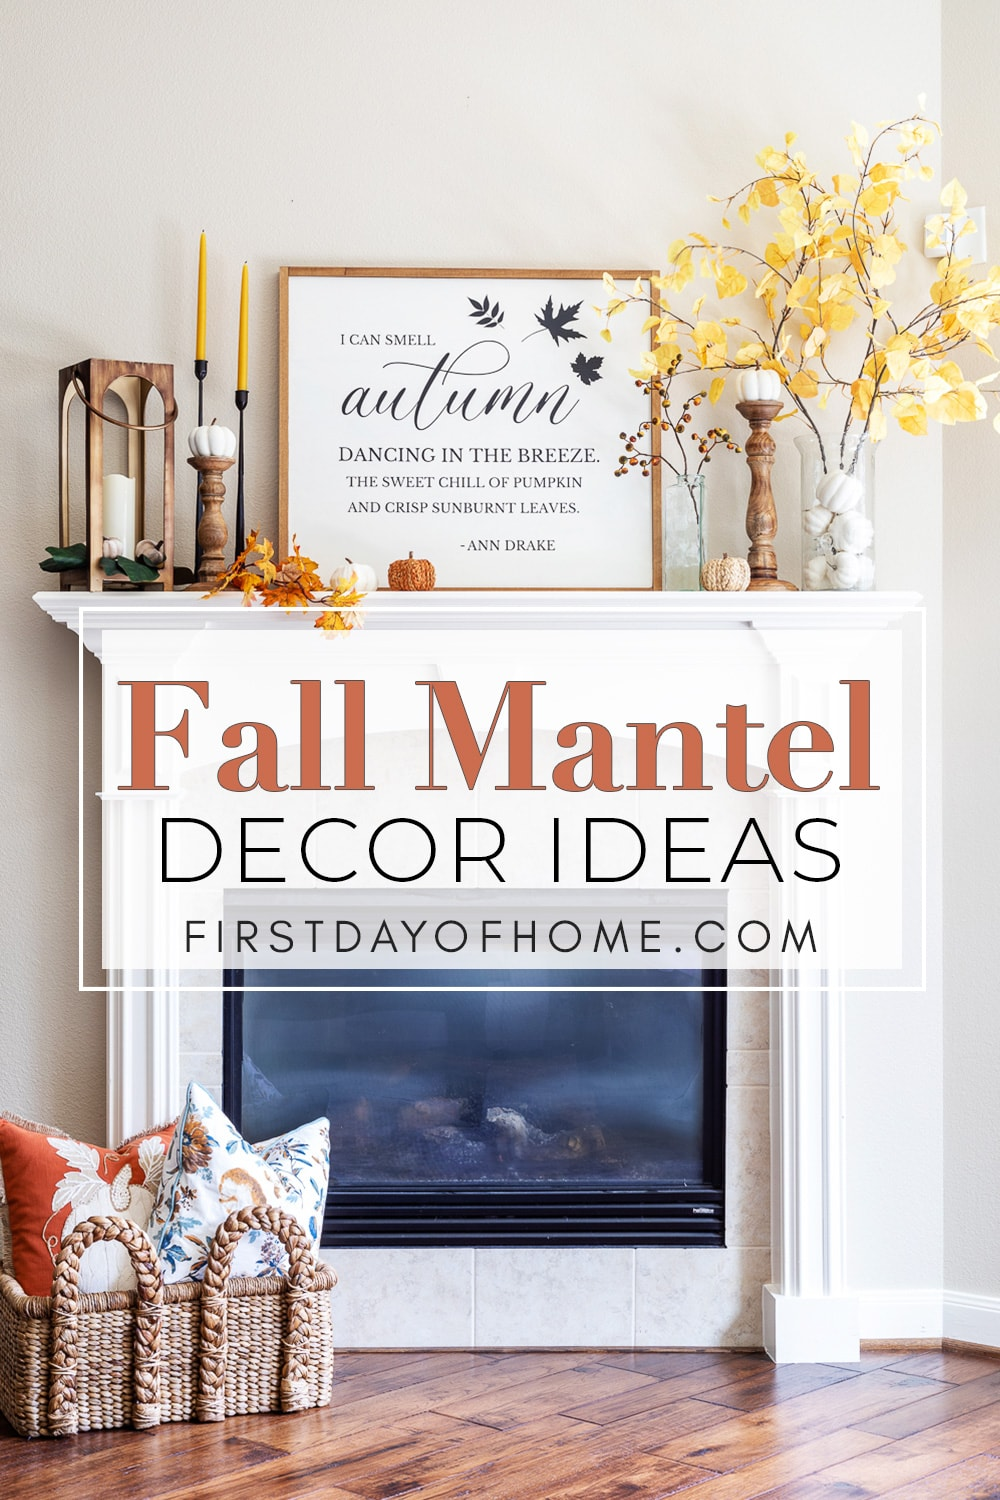 Fall mantel decor with faux aspen stems, glass vases, candlestick holders, a lantern, and a farmhouse sign